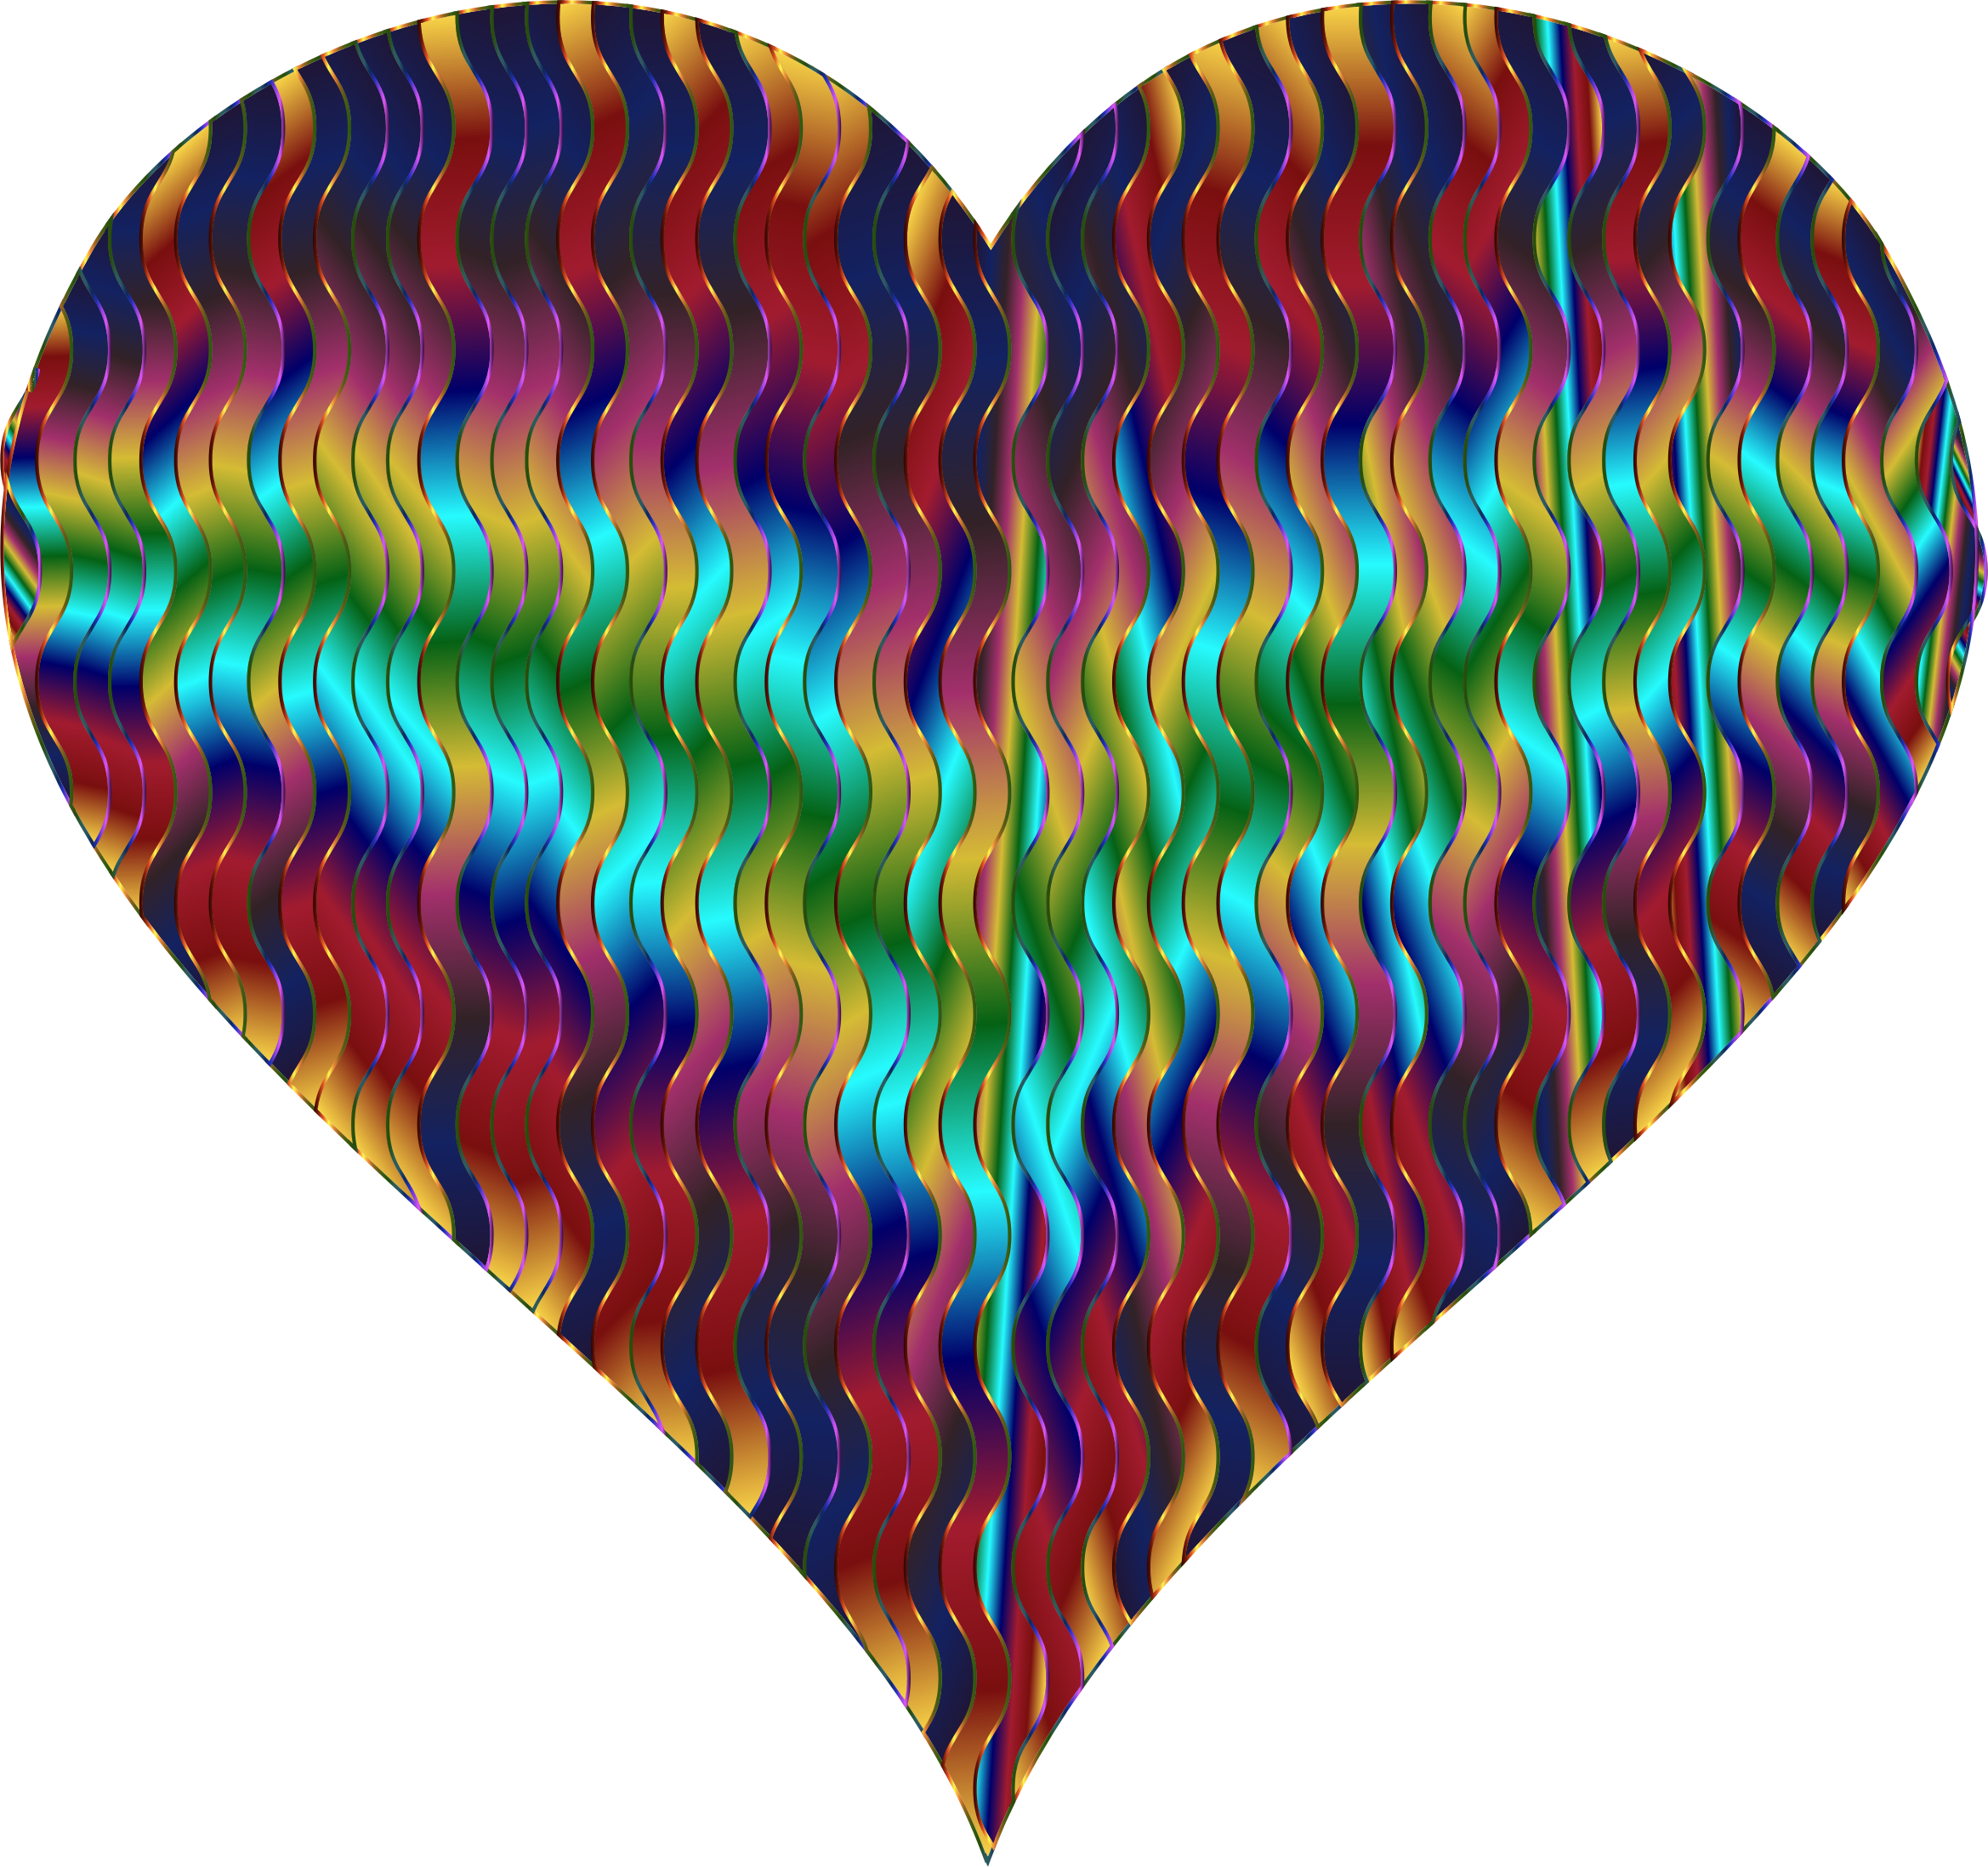 Colorful Wavy Heart 6 by GDJ